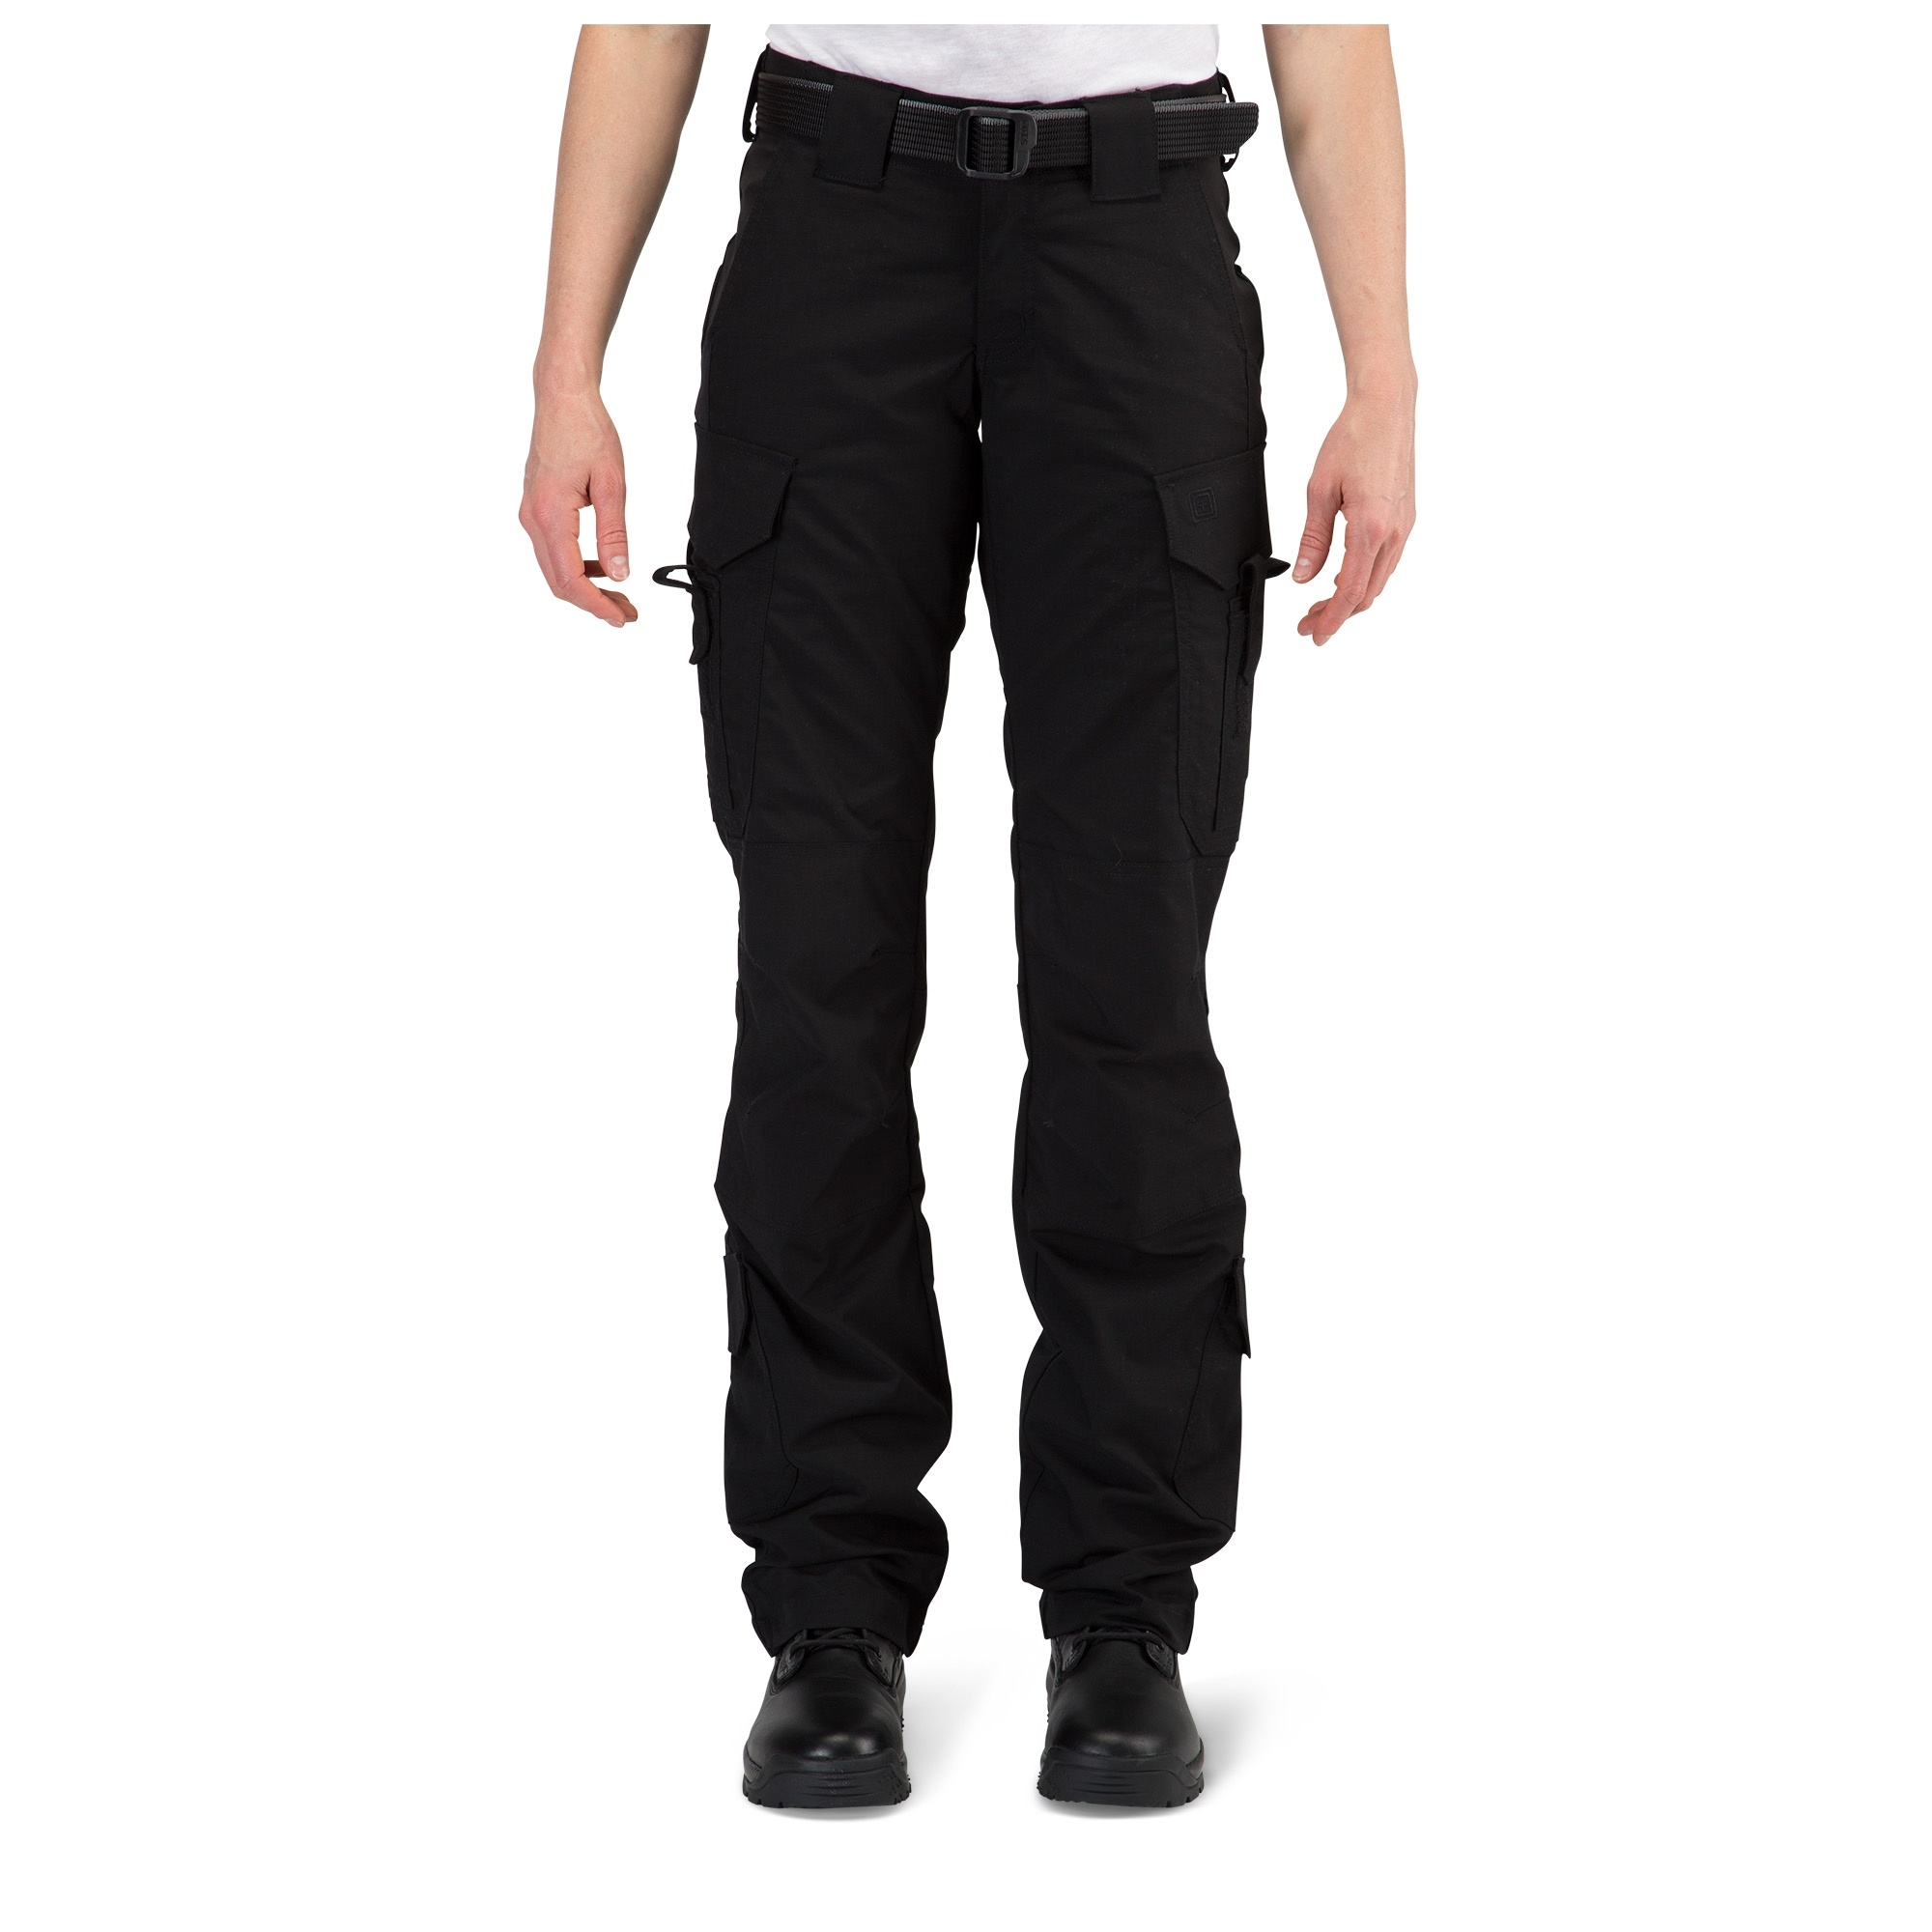 5.11 Tactical Women's STRYKE EMS Pant